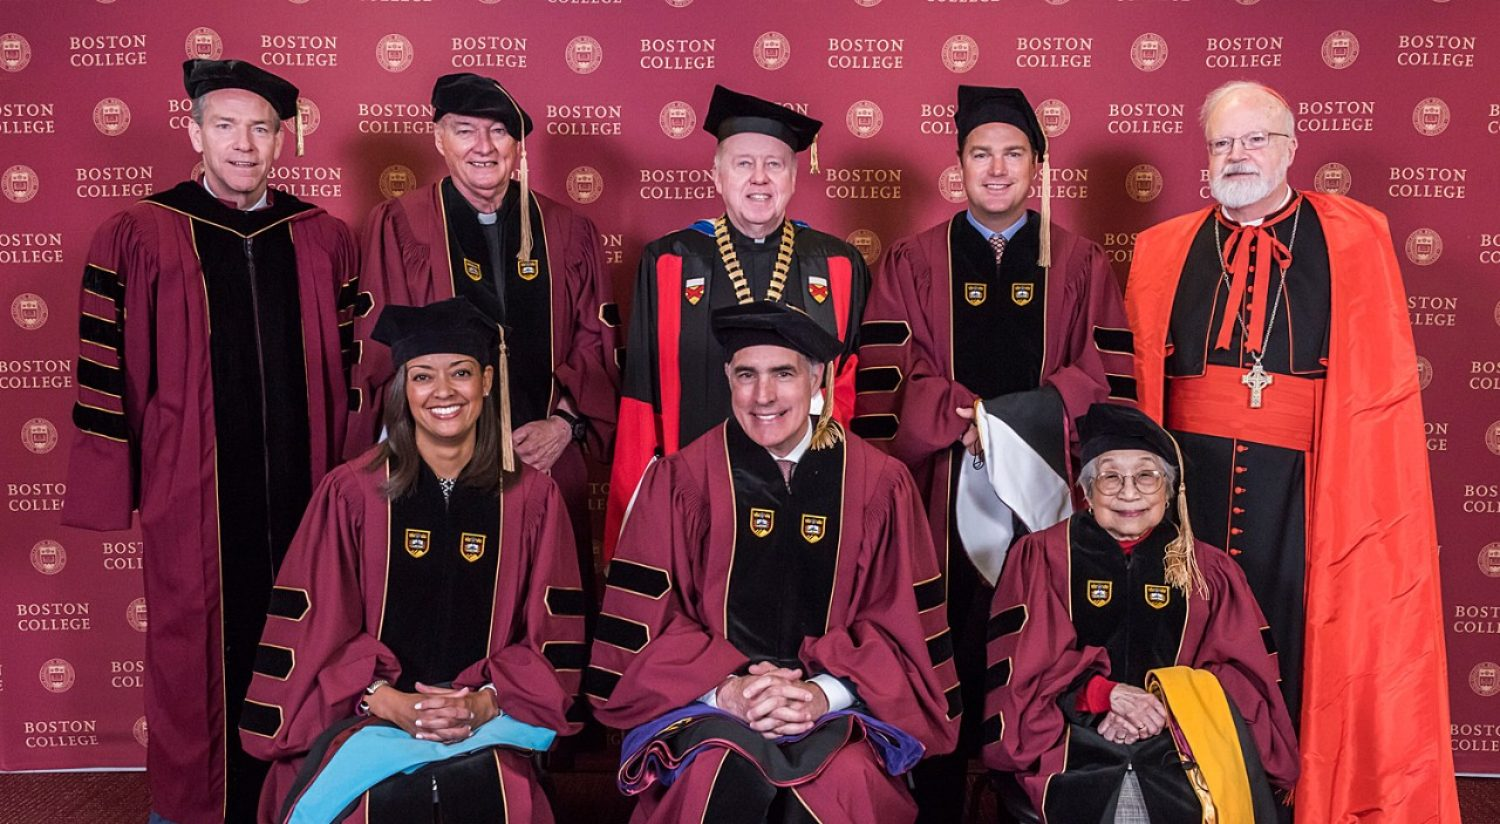 Boston College honorary degree recipients - Commencement 2017